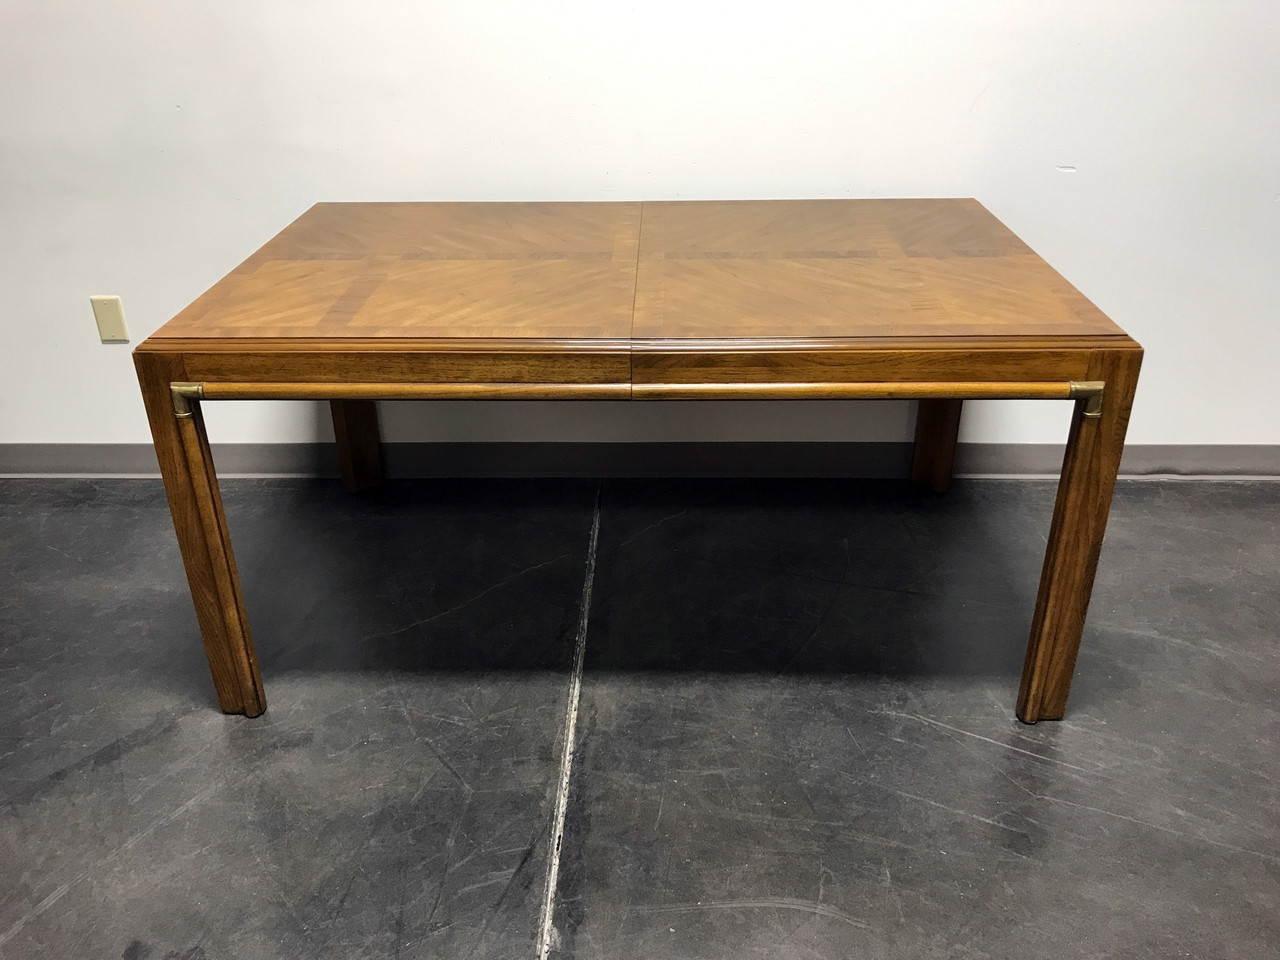 SOLD OUT DREXEL HERITAGE Accolade Campaign Style Dining Table